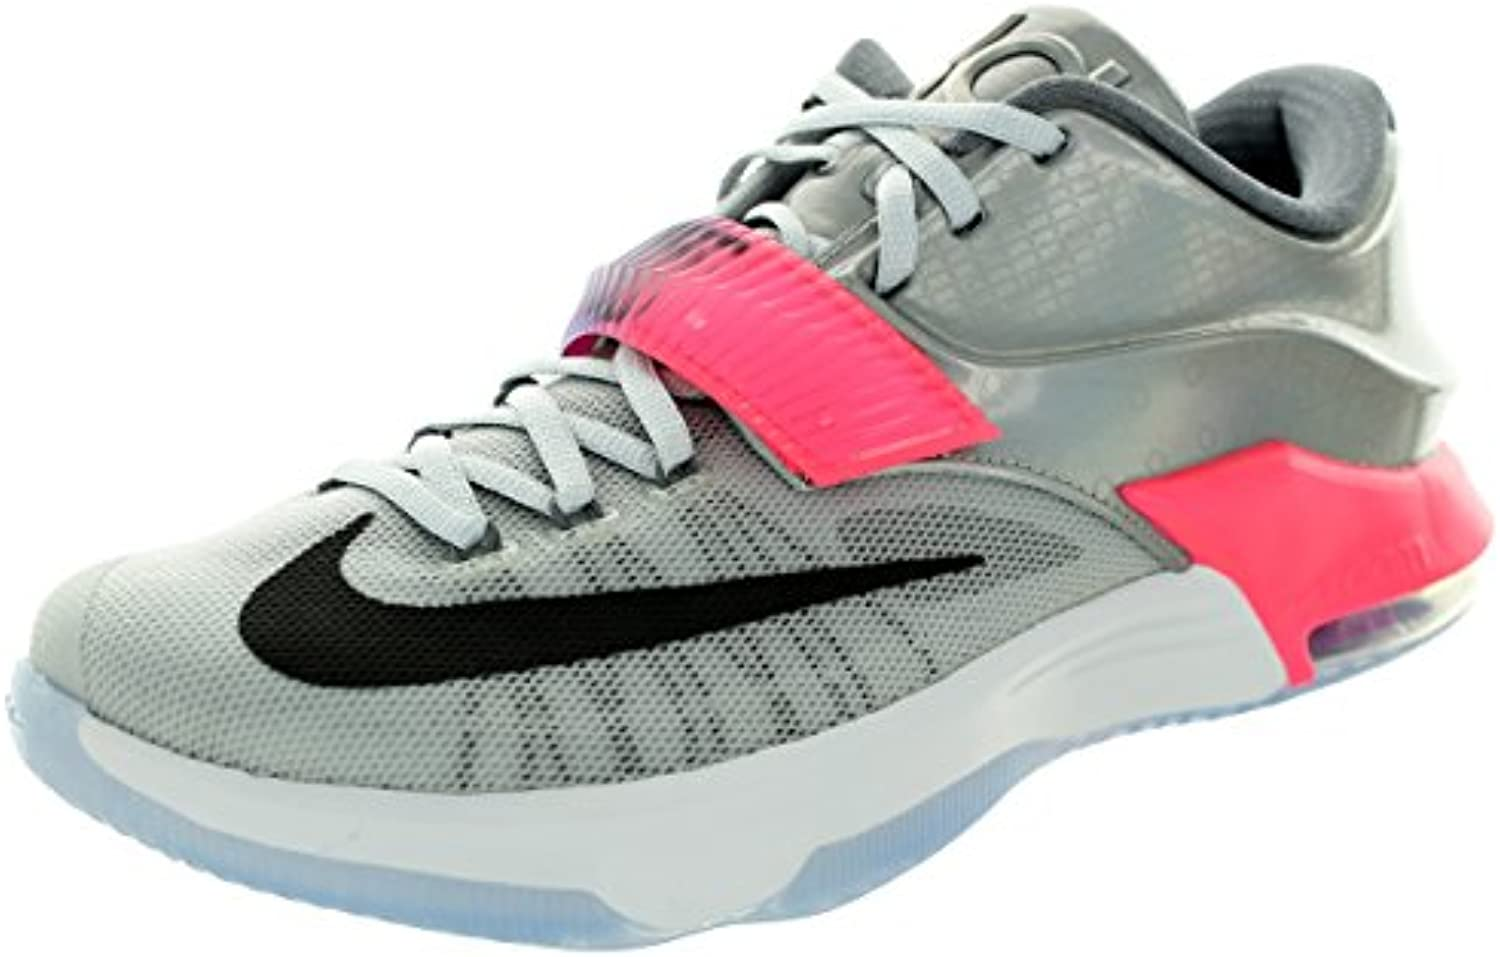 Nike KD VII As All Star Herren Basketball Sneaker